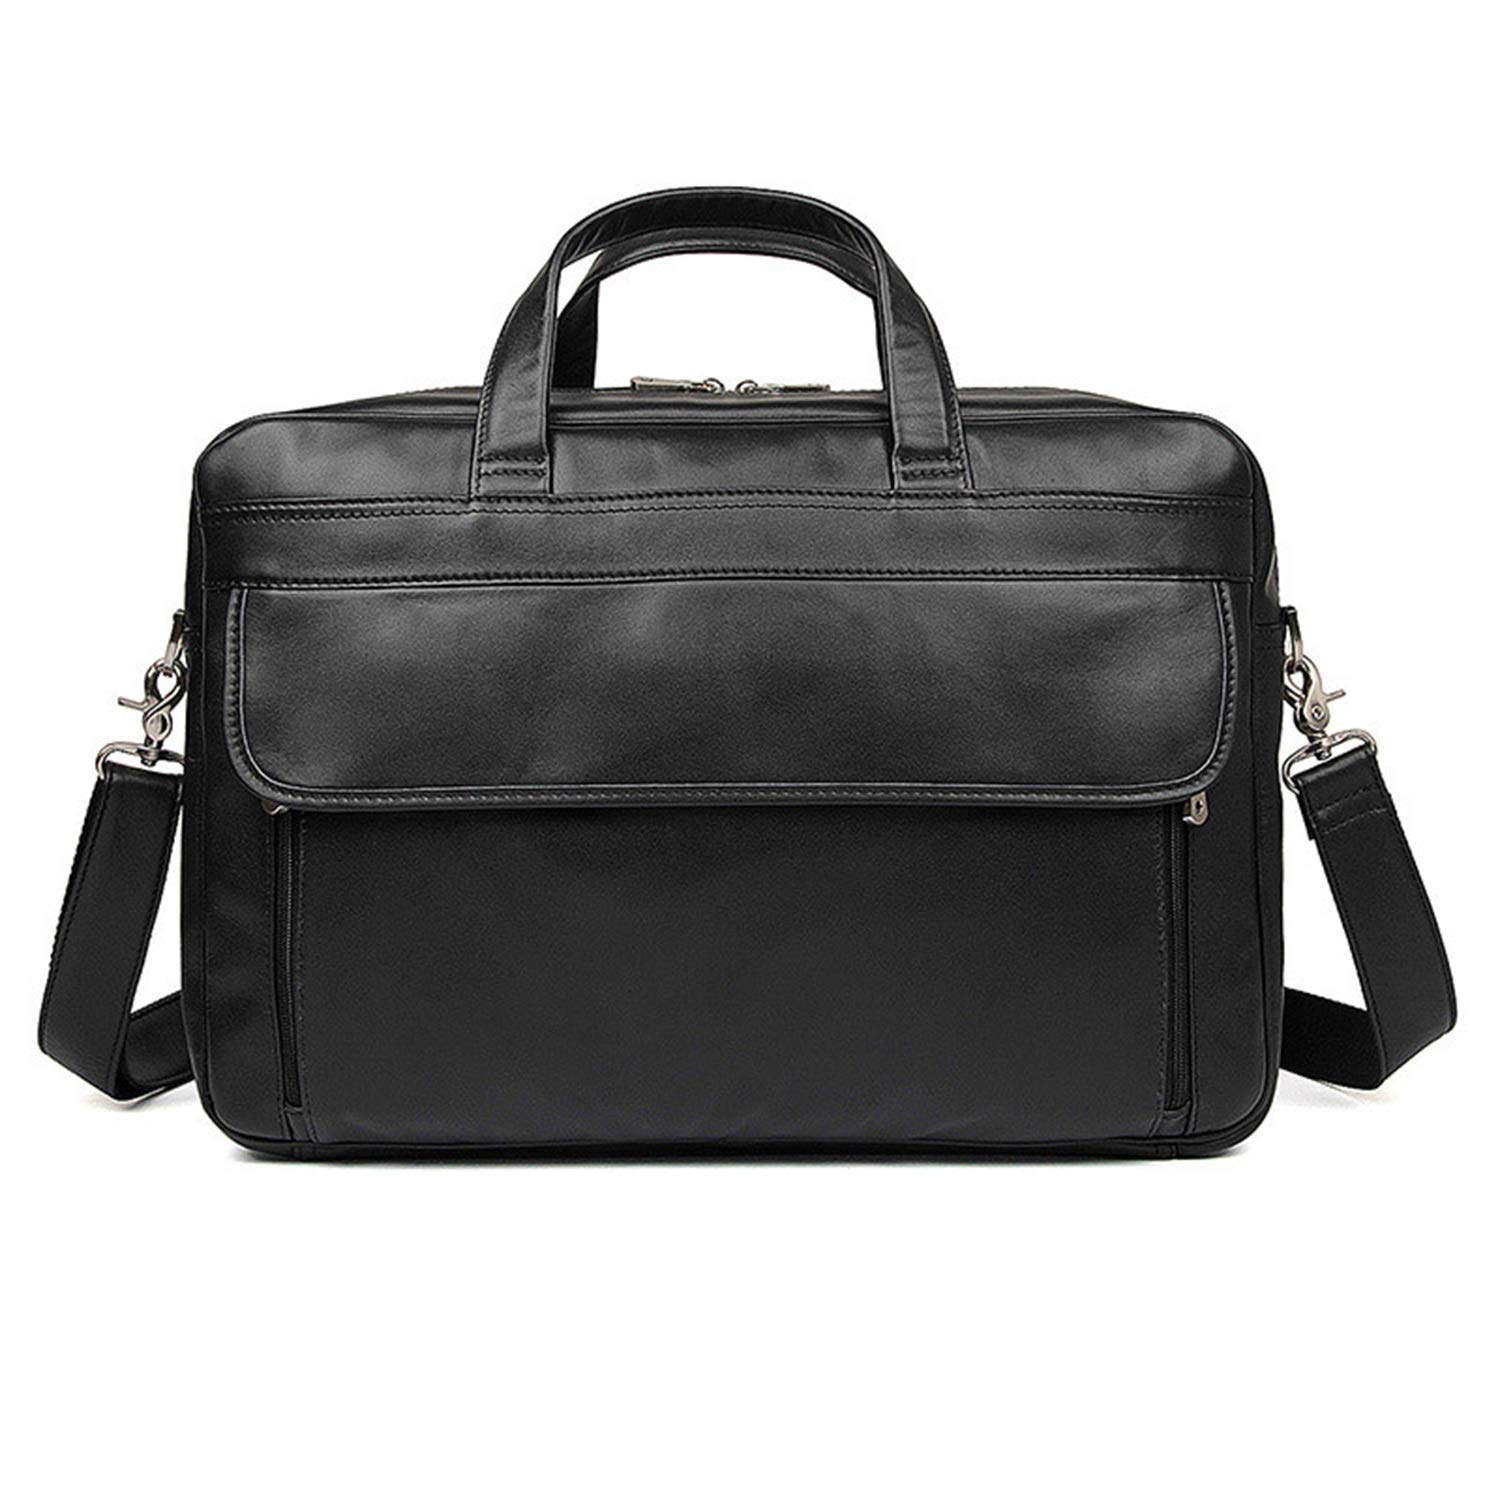 Rouroumaoyi Mens Shoulder Bag Leather Mens Bag Business Tote Leather Napa Leather Large Briefcase Color : Black, Size : L